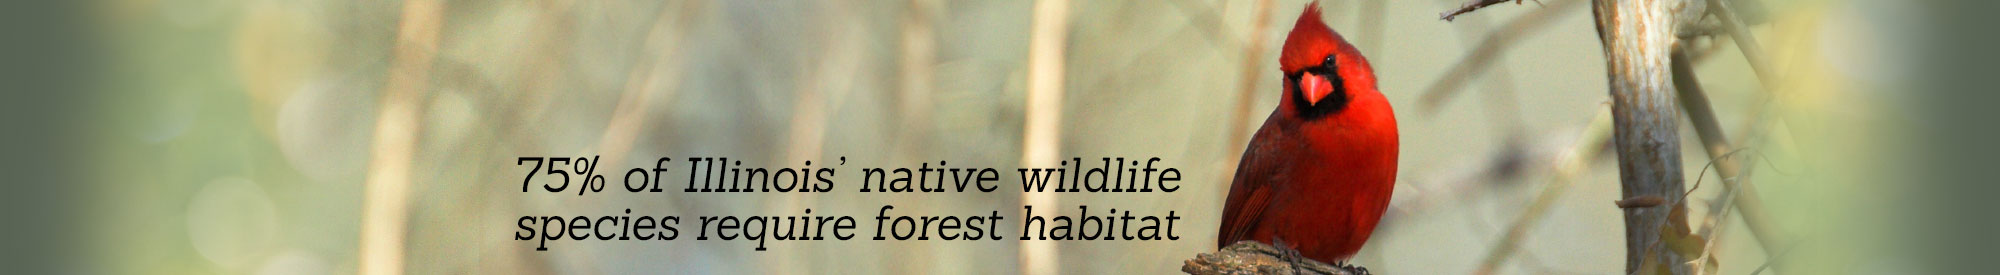 75% of Illinois' native wildlife require forest habitat.